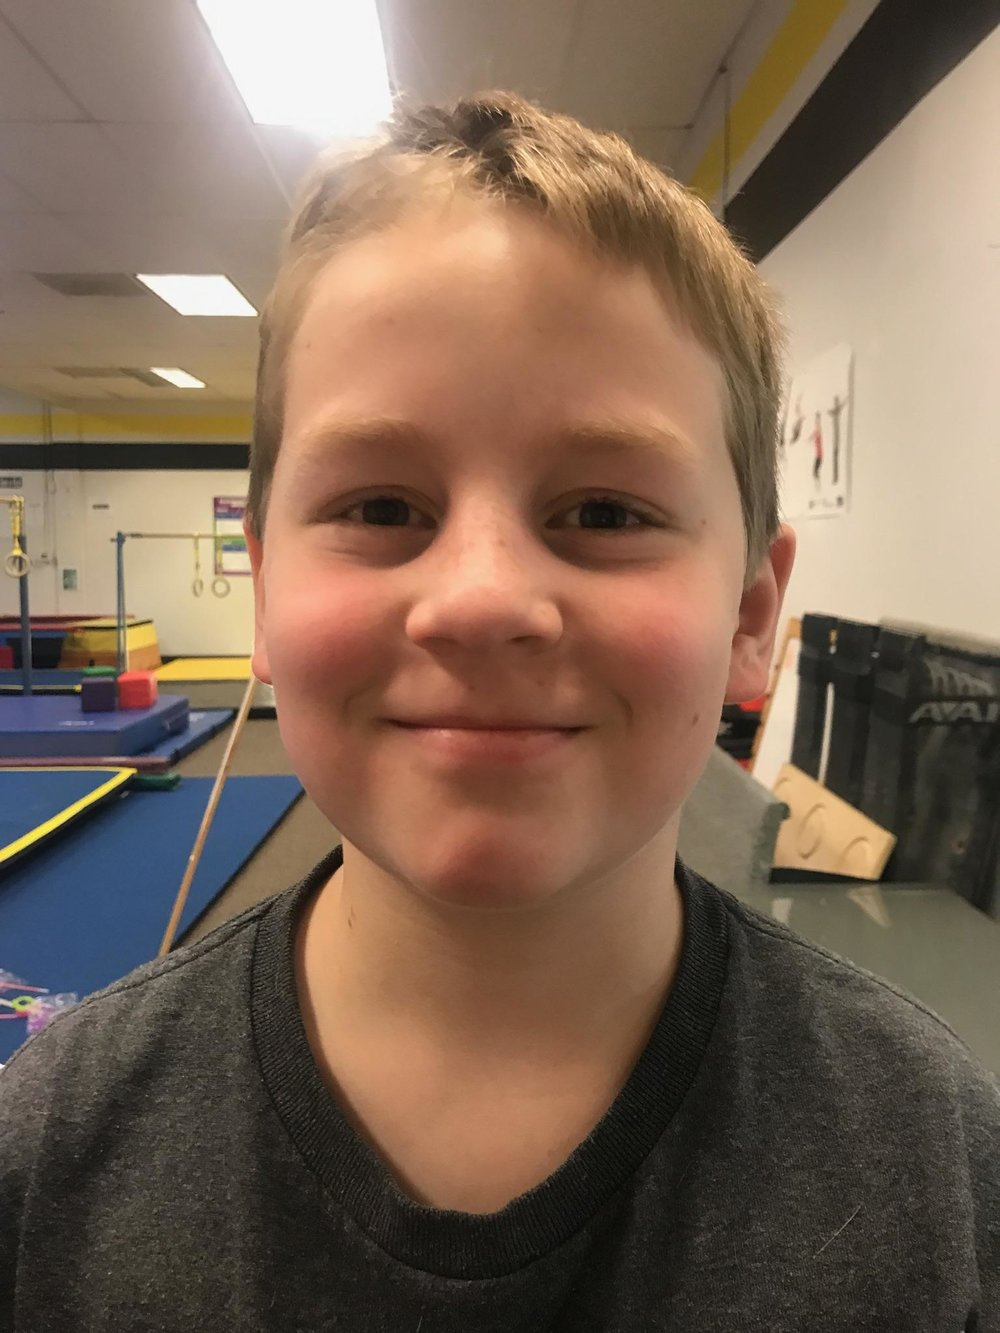 Gabe is a natural leader and a talented gymnast. His group benefits from his creative ideas and suggestions throughout every class. Most importantly, Gabe has shown dramatic improvement in his ability to manage frustrating situations. He continues to be thoughtful about using kind words with his classmates and the staff. We are so proud of Gabe's progress and we look forward to seeing more of his great accomplishments in the future. Keep up the awesome work!